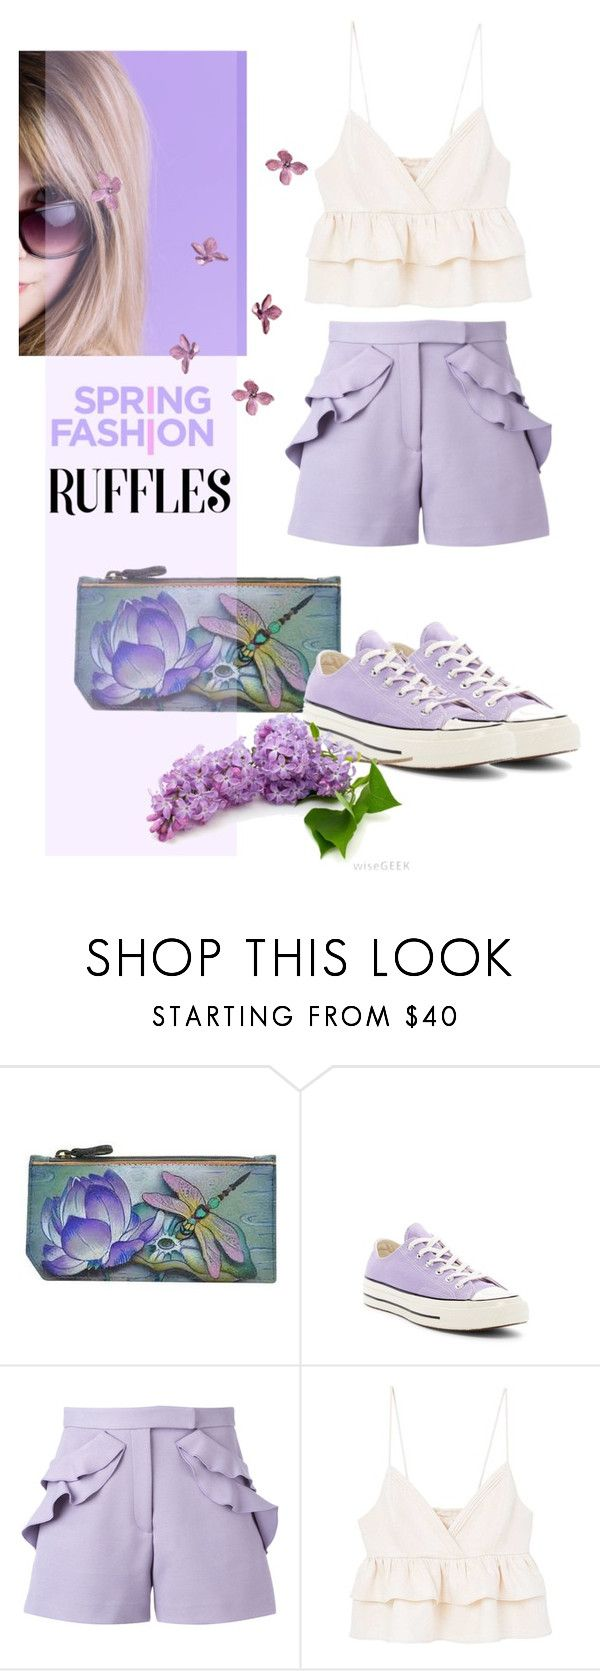 """Spring Ruffles"" by youaresofashion ❤ liked on Polyvore featuring Anuschka, Converse, Elie Saab, MANGO and ruffledtops"